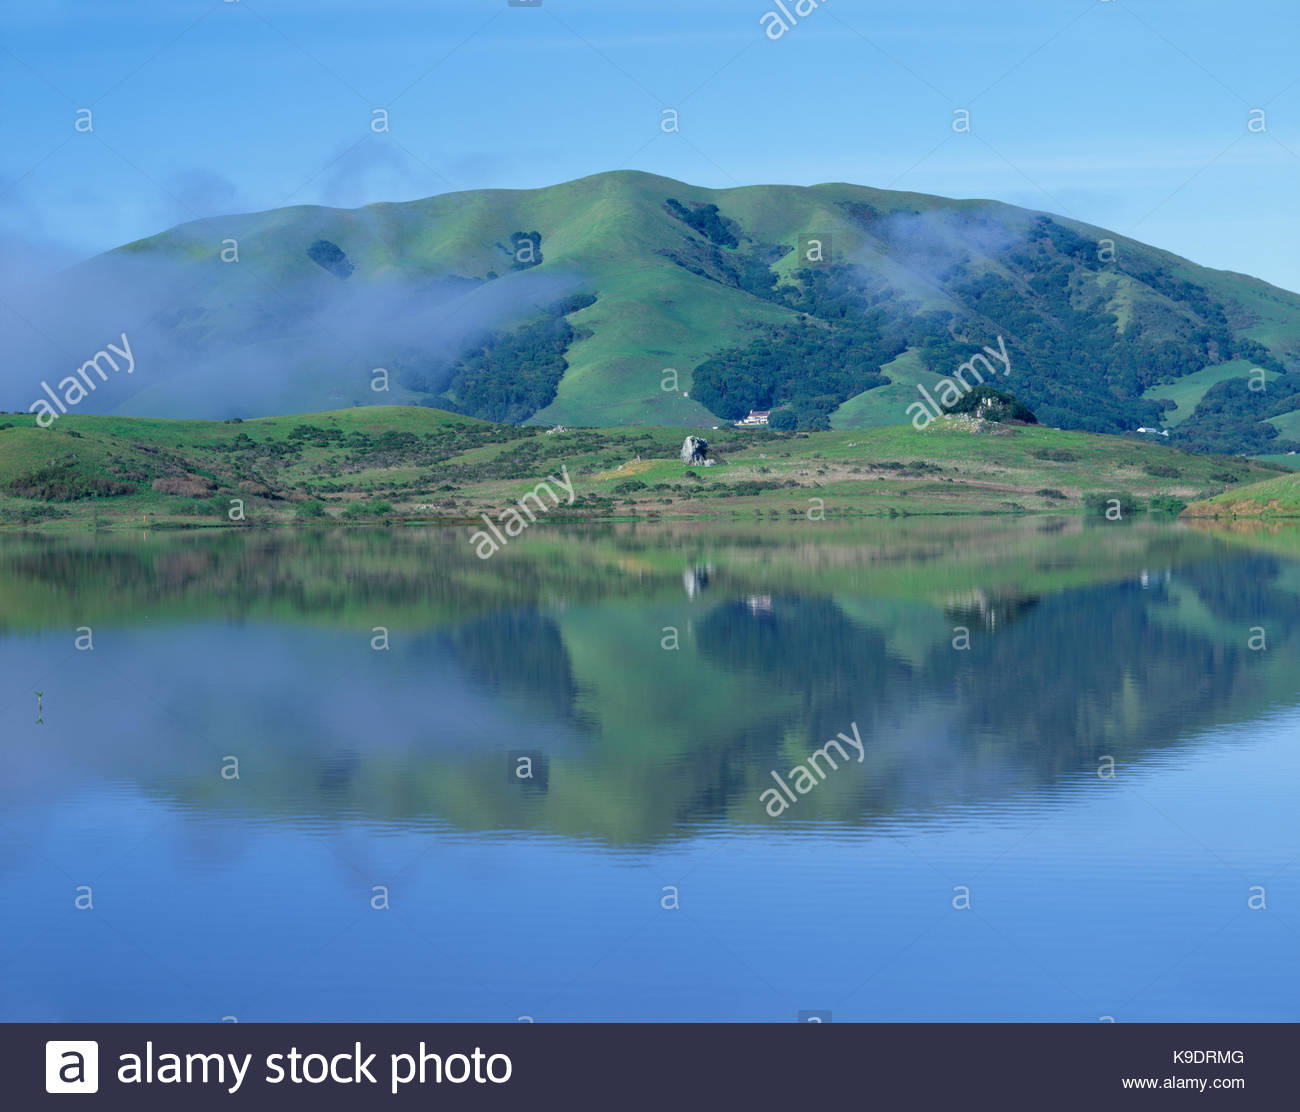 Black Mountain and Nicasio Reservoir, Marin County, California - Stock Image